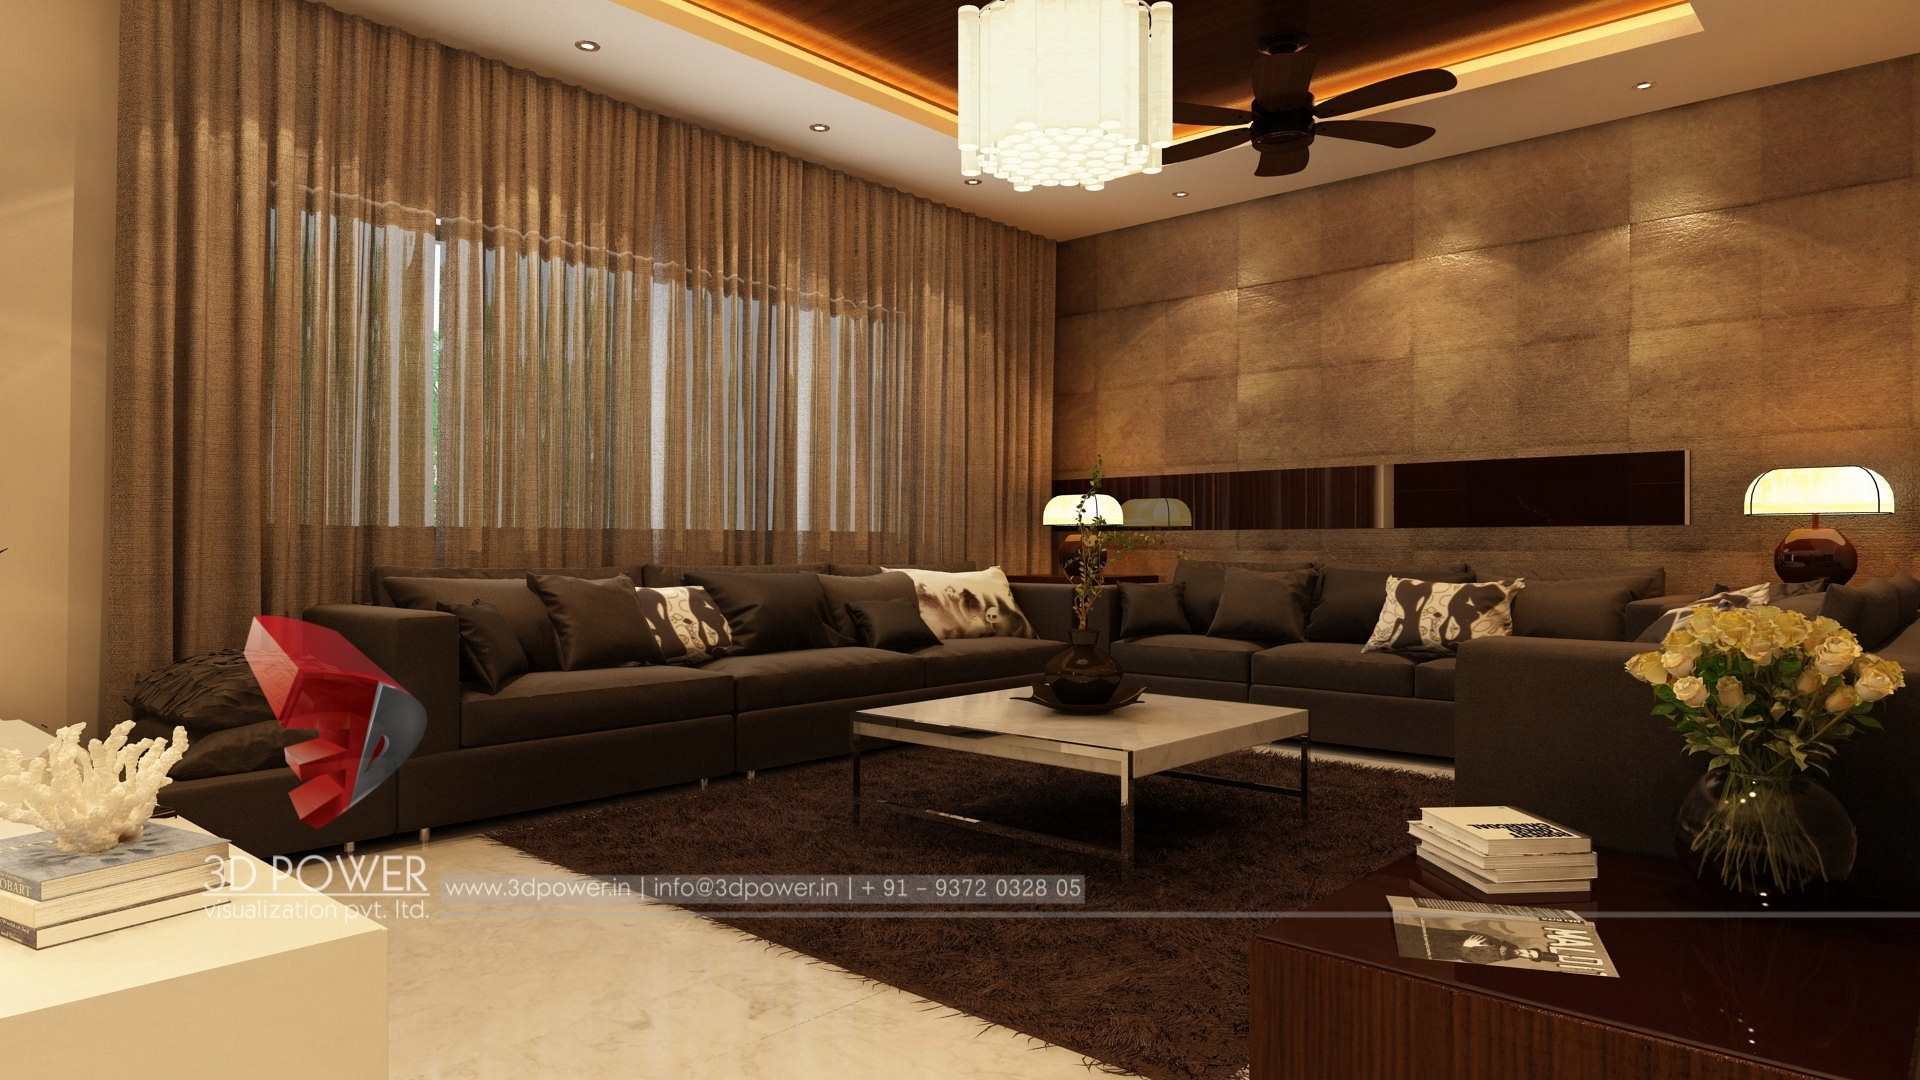 3d interior design rendering services bungalow home - Interior design for living room and bedroom ...